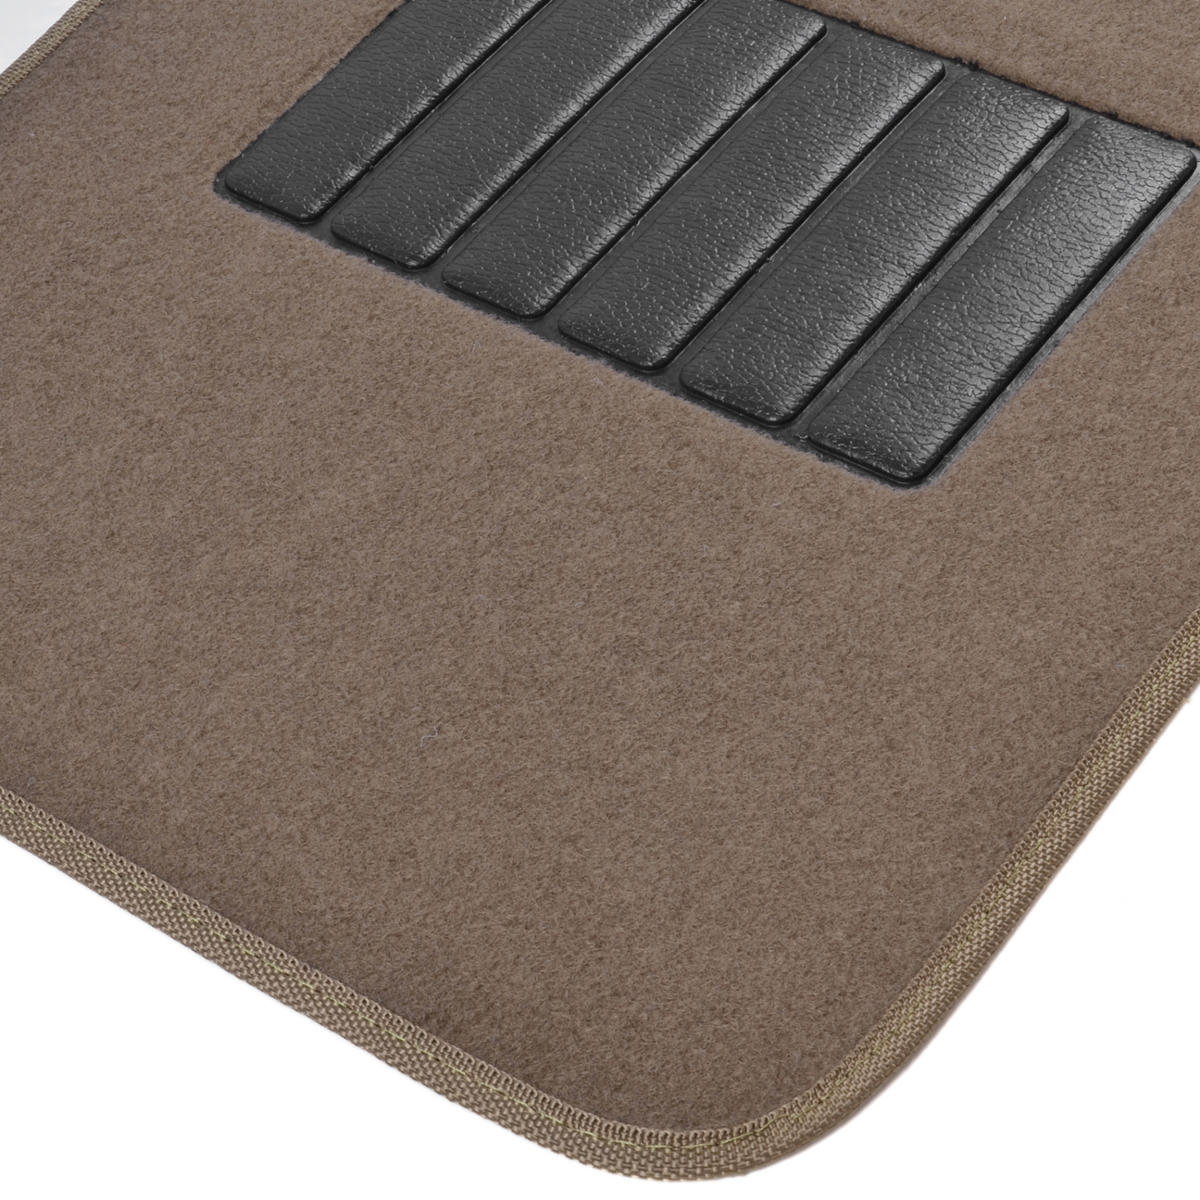 rug outdoor x unoclean scraper mat floor wiper indoor entrance waterguard utility